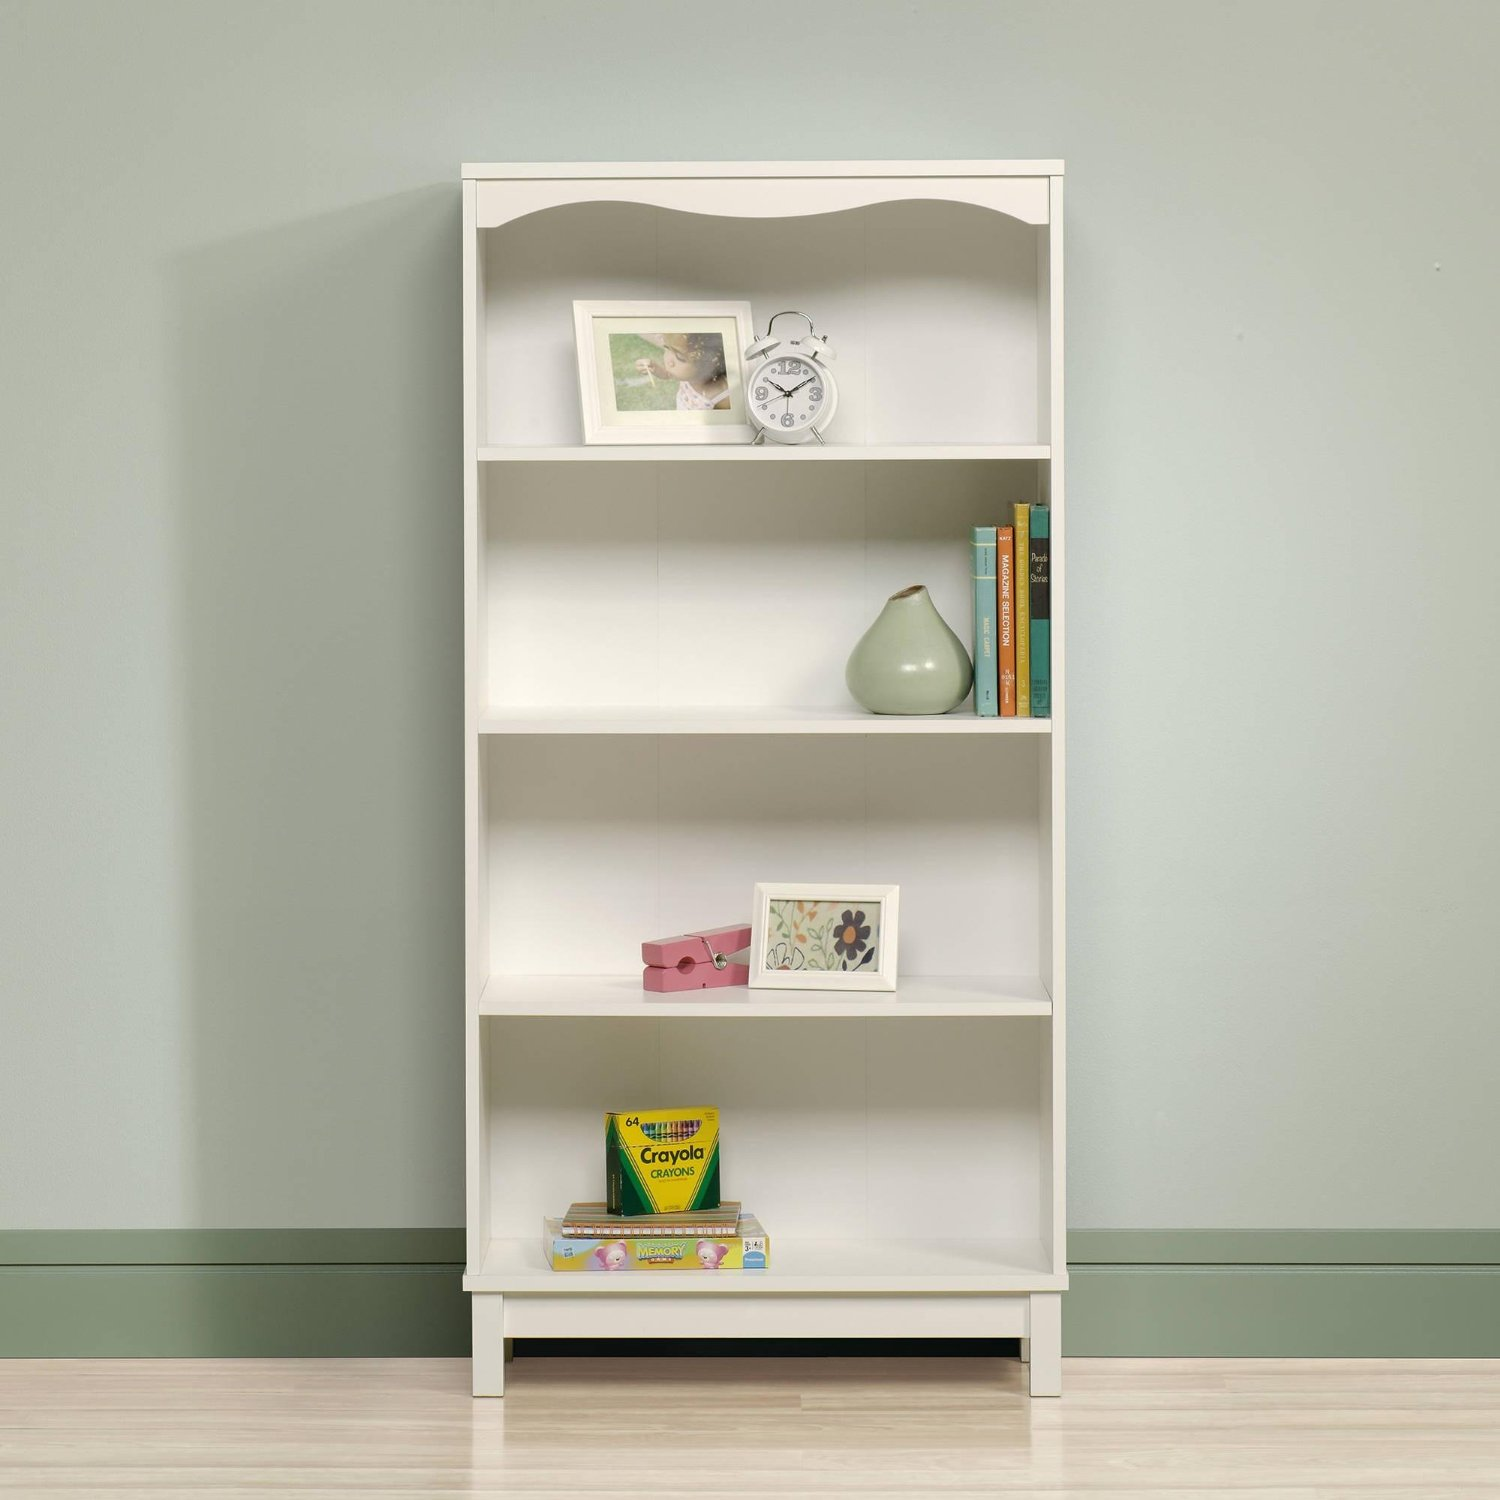 Storybook Bookcase Unit a Beautiful Designed Display & Suitable Office Furniture. This Bookshelf Storage Unit Useful for Home Office, Living Room, Kids Room, Kitchen, can hold your Books, CDs